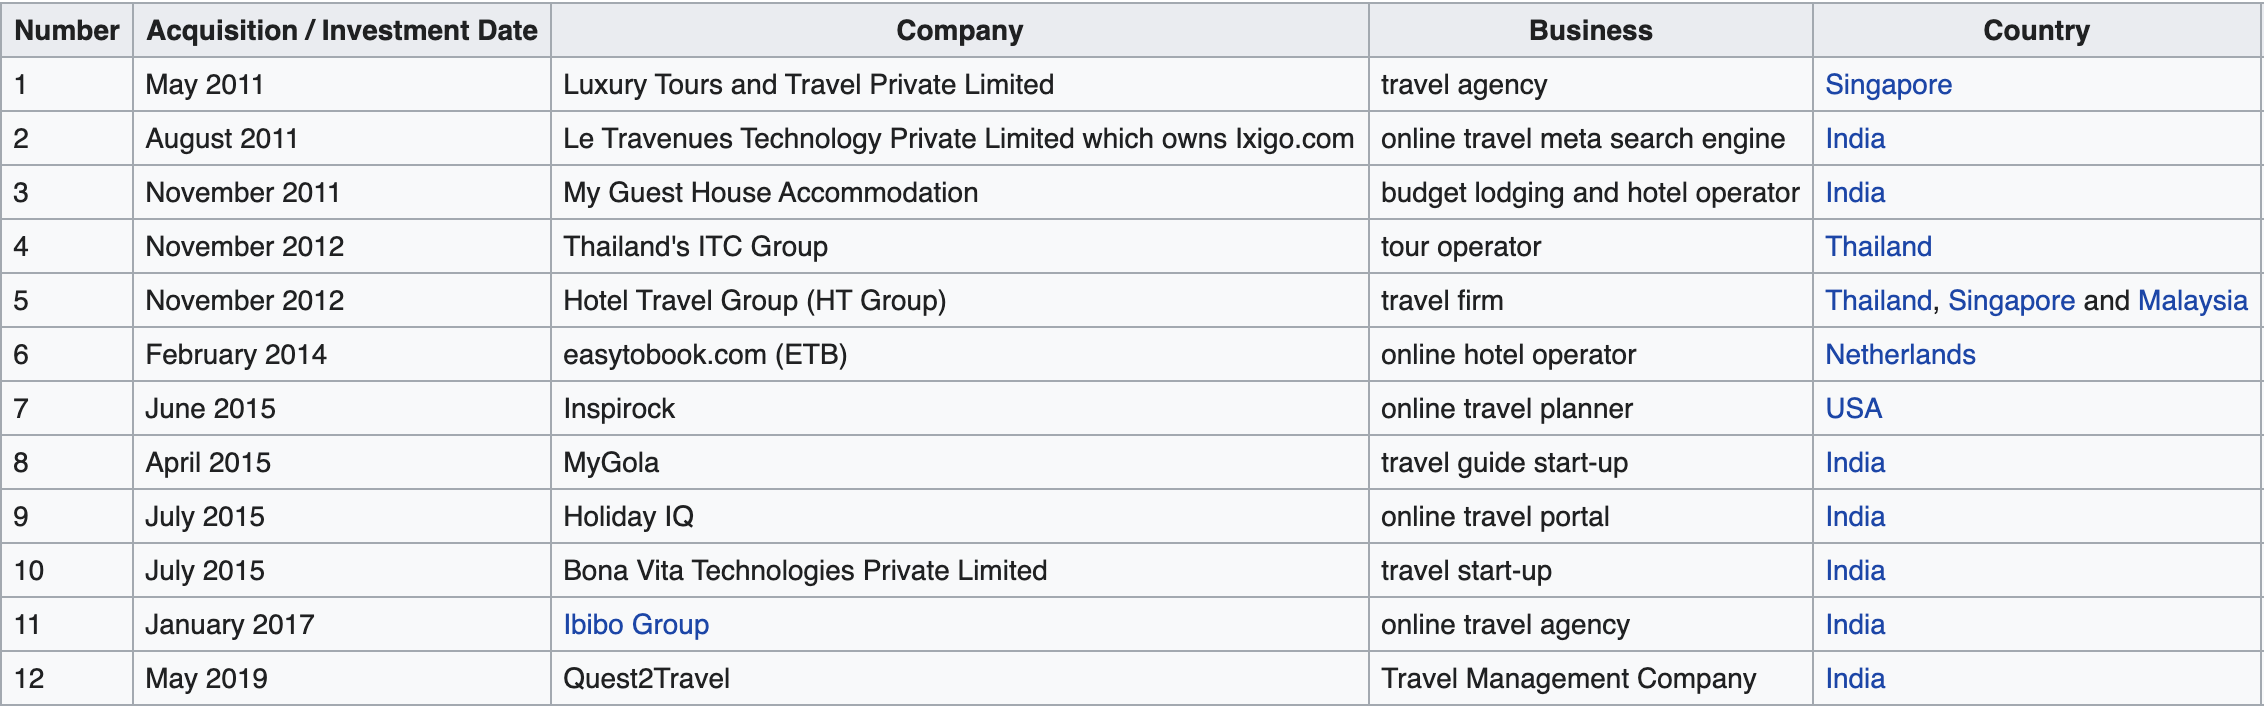 All MMT acquisitions - Credit [Wikipedia](https://en.wikipedia.org/wiki/MakeMyTrip#Mergers,_acquisitions_and_investments)